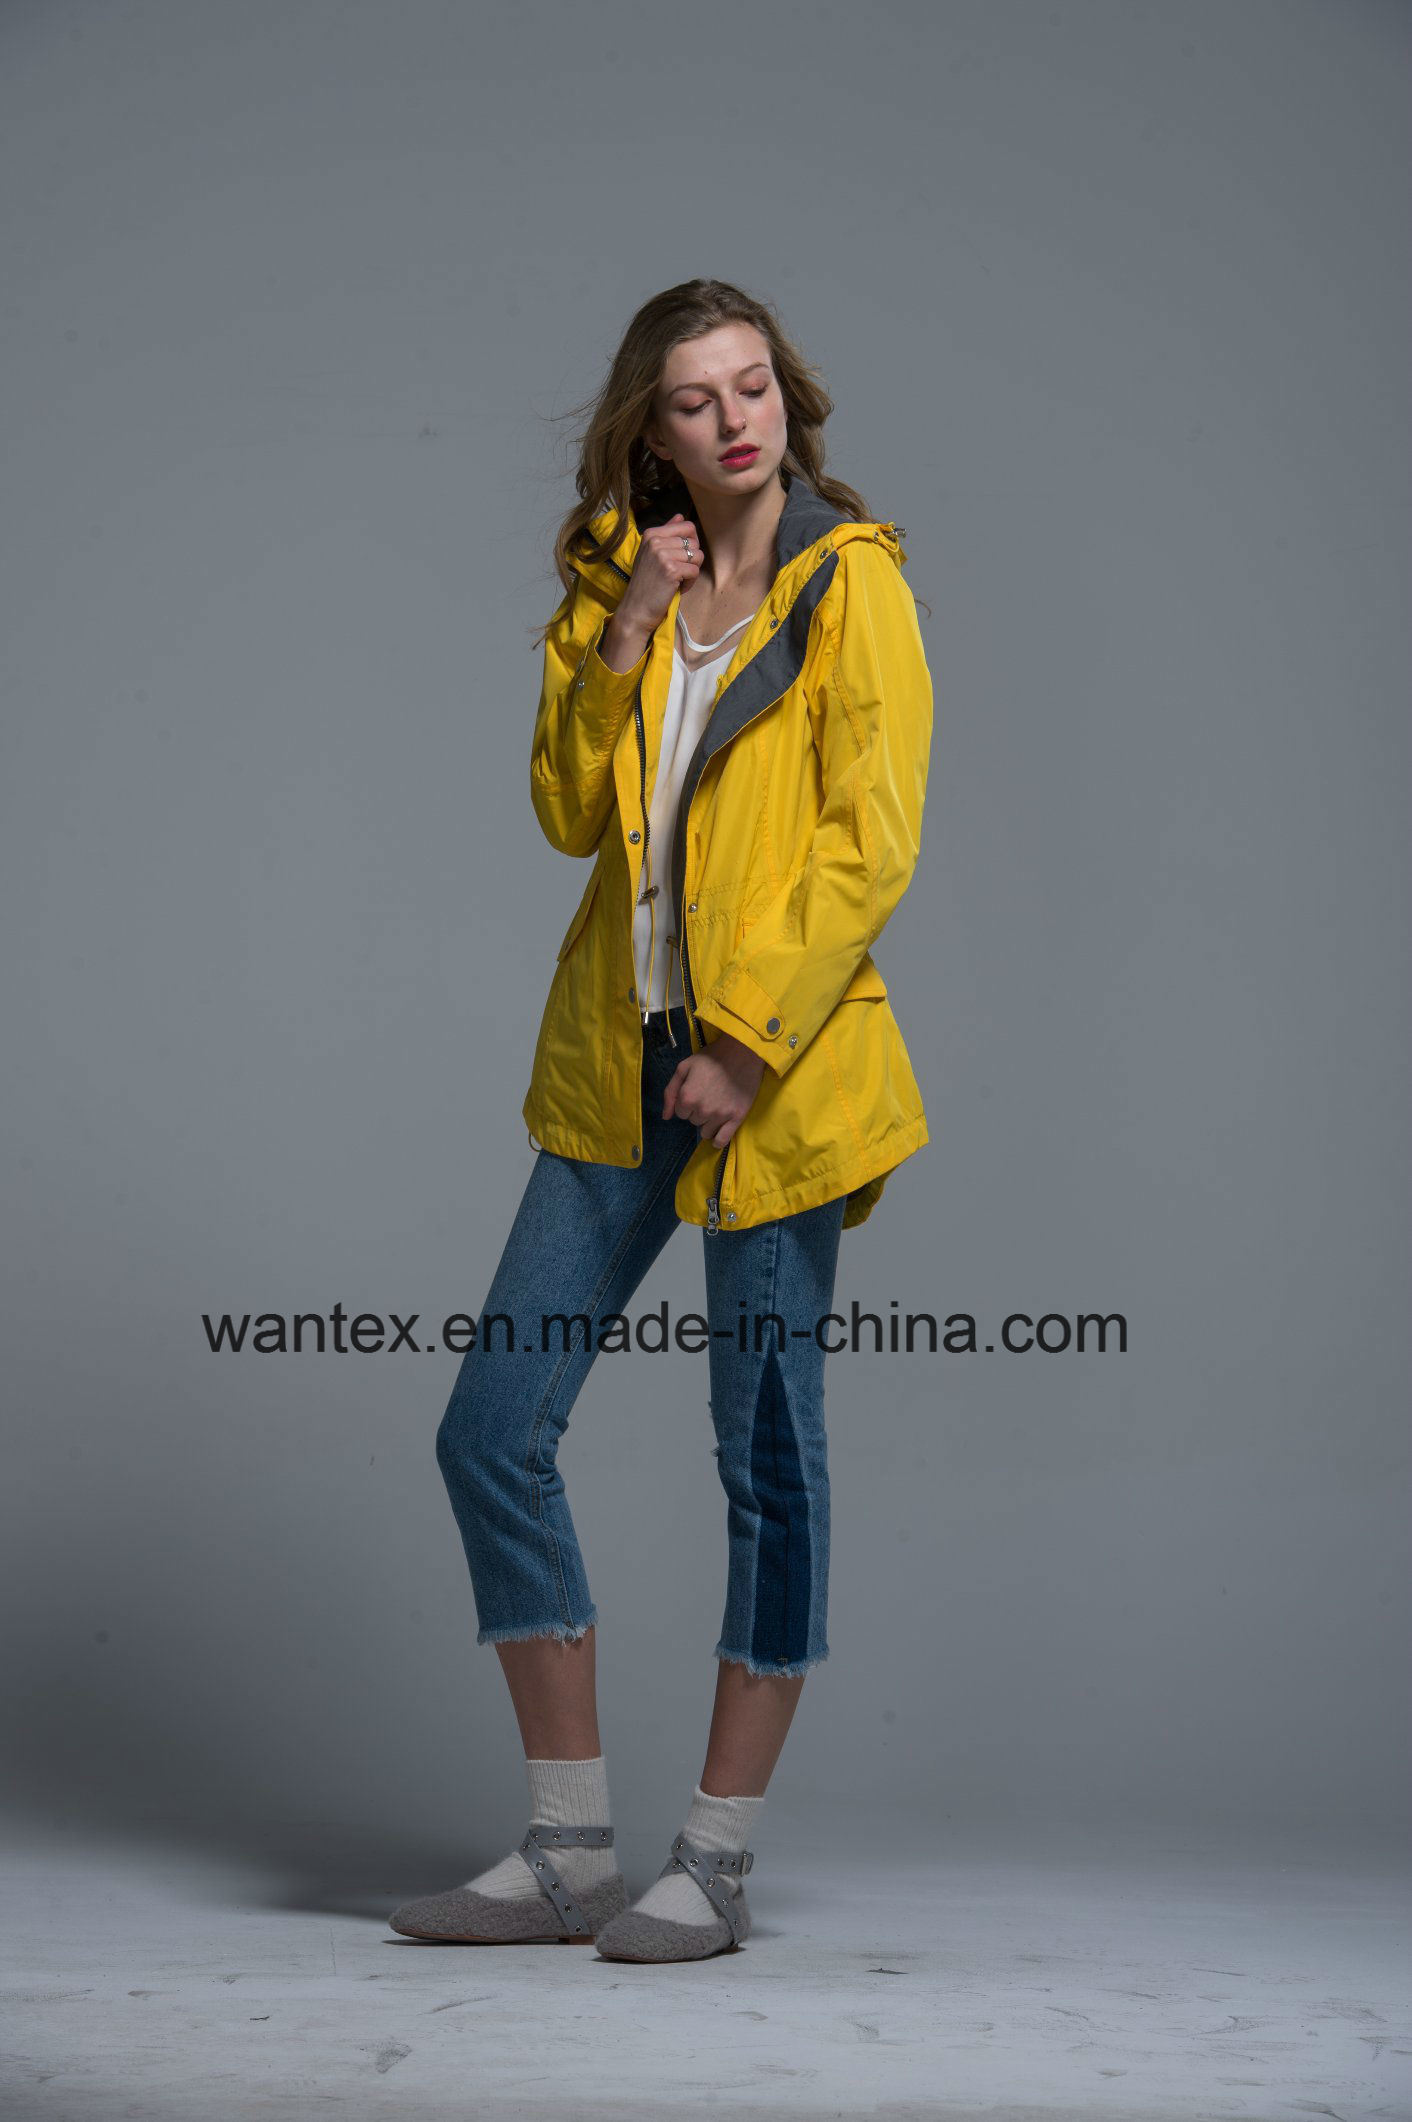 Ladies Loose Jacket Pizex Fashion 100% Cotton Spring Autumn Yellow Waterproof